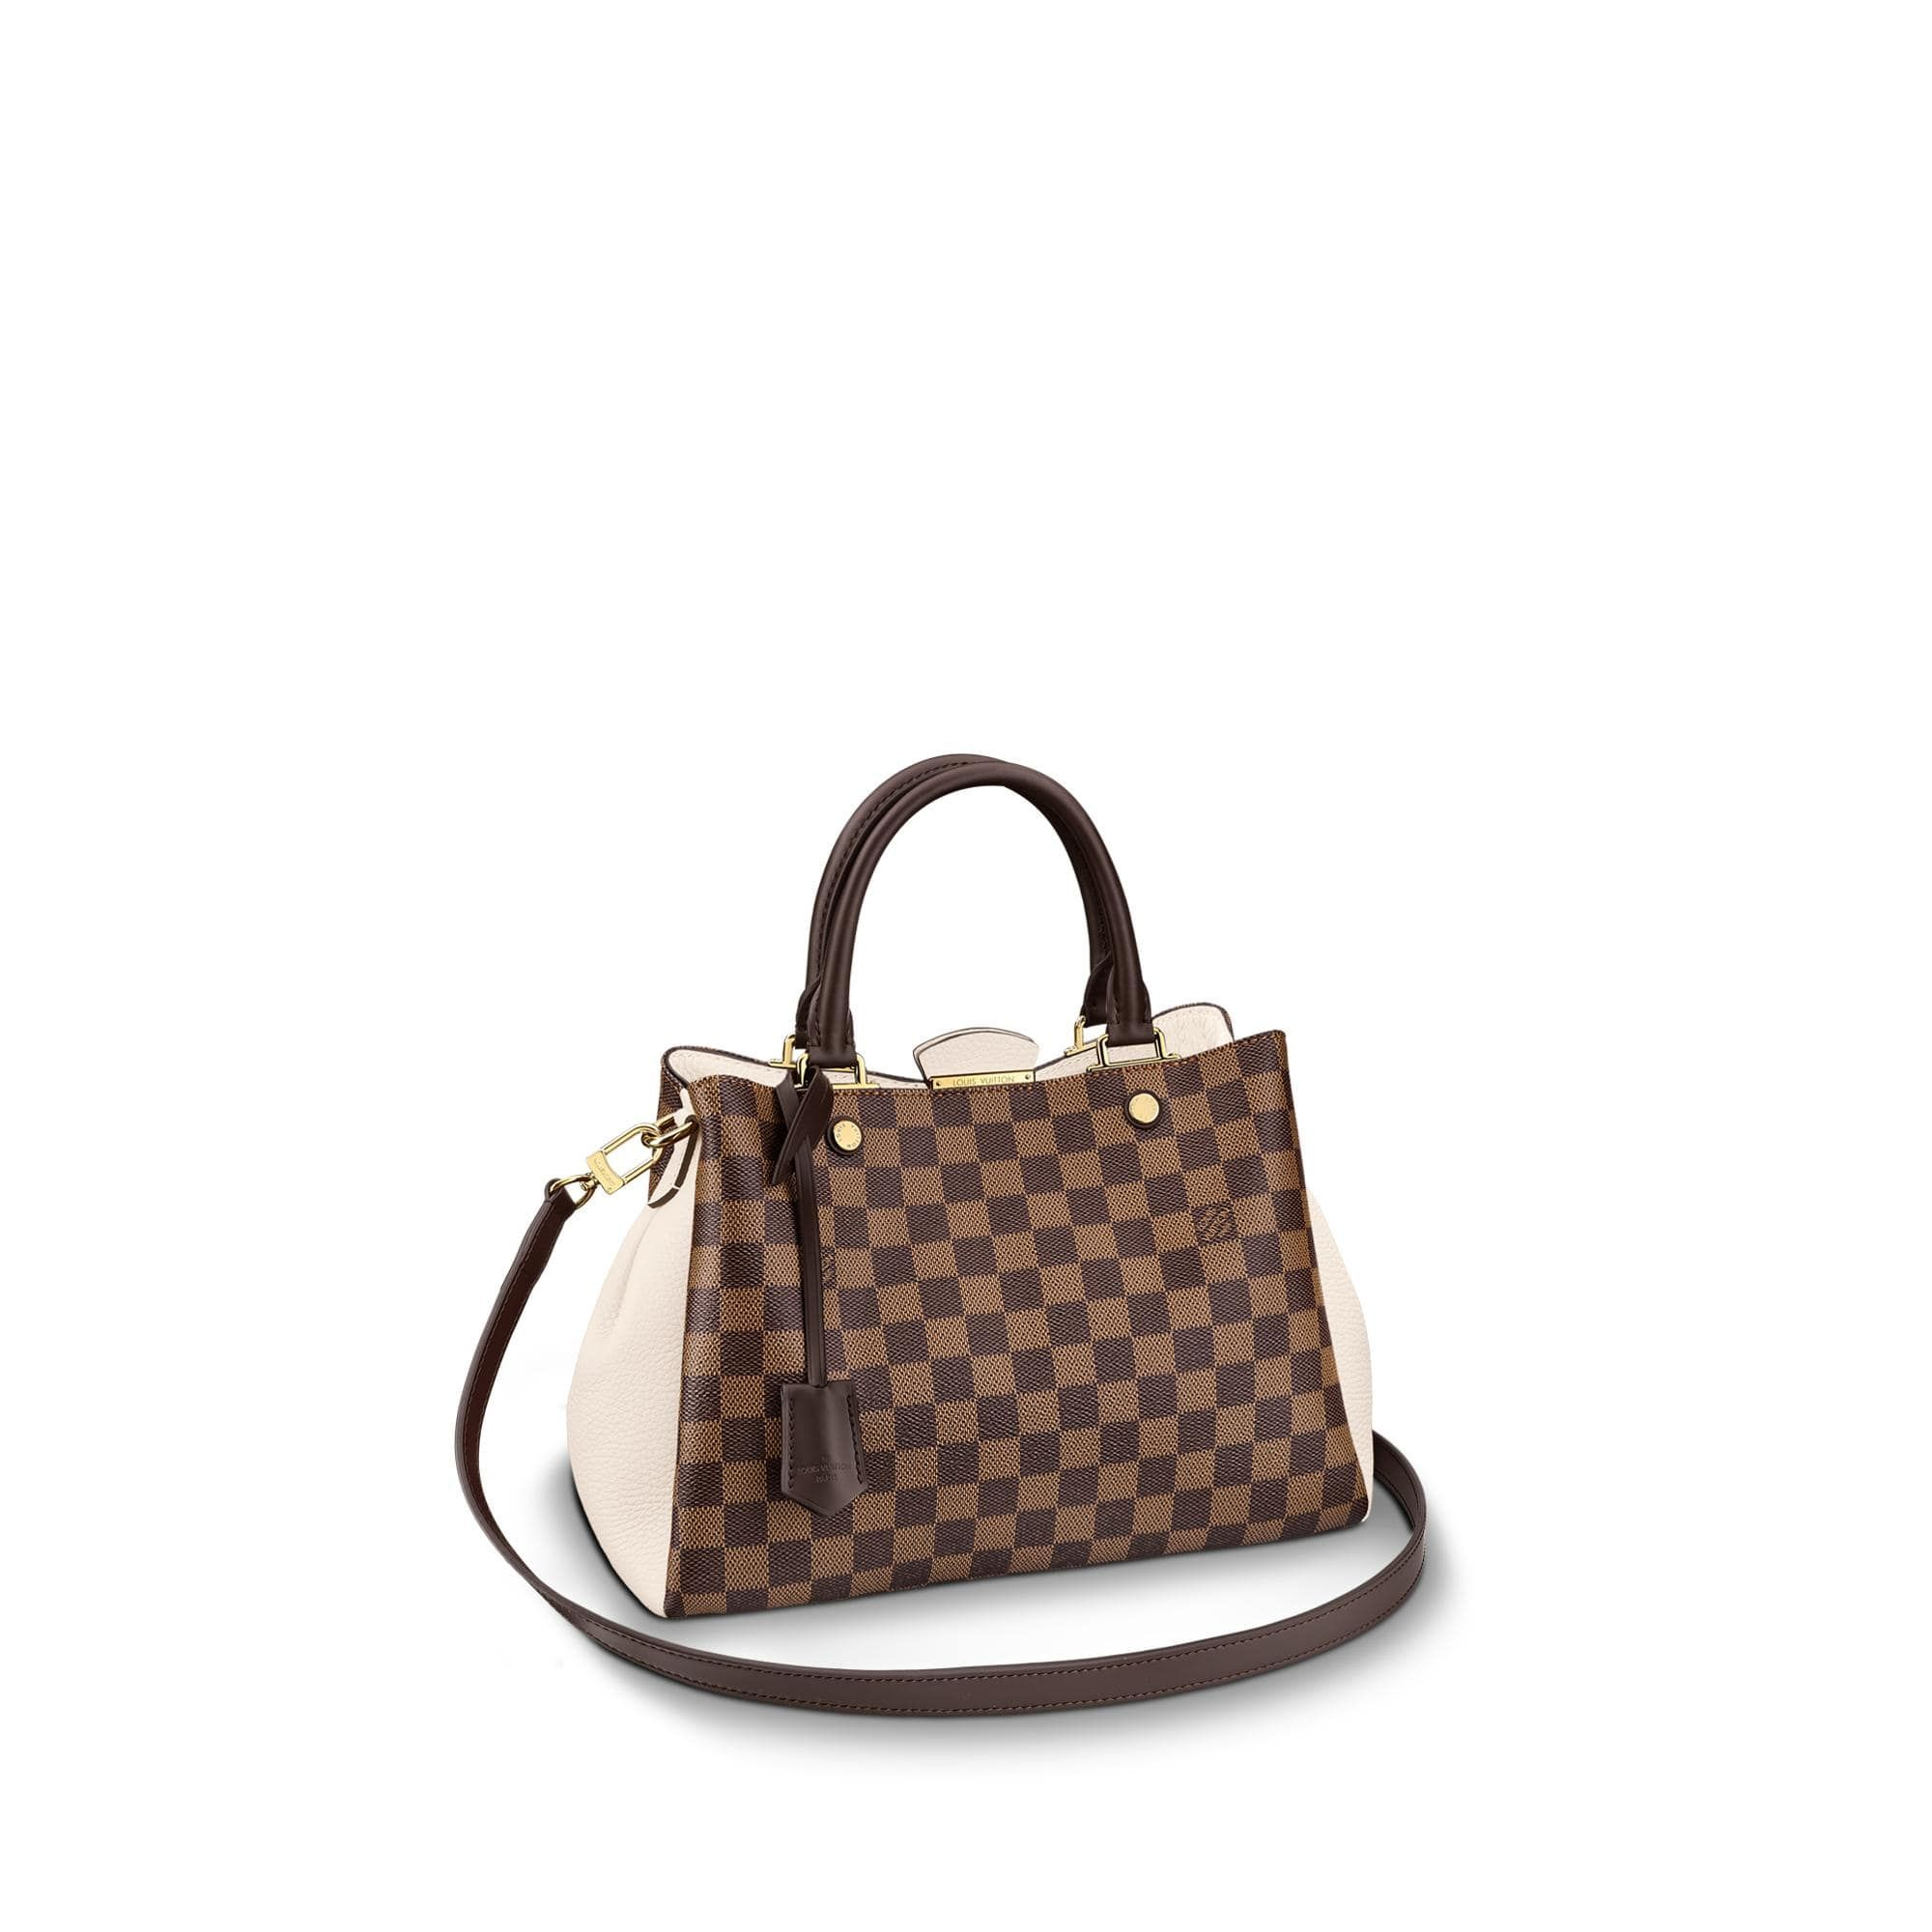 a46ac1811ca3 Brittany via Louis Vuitton